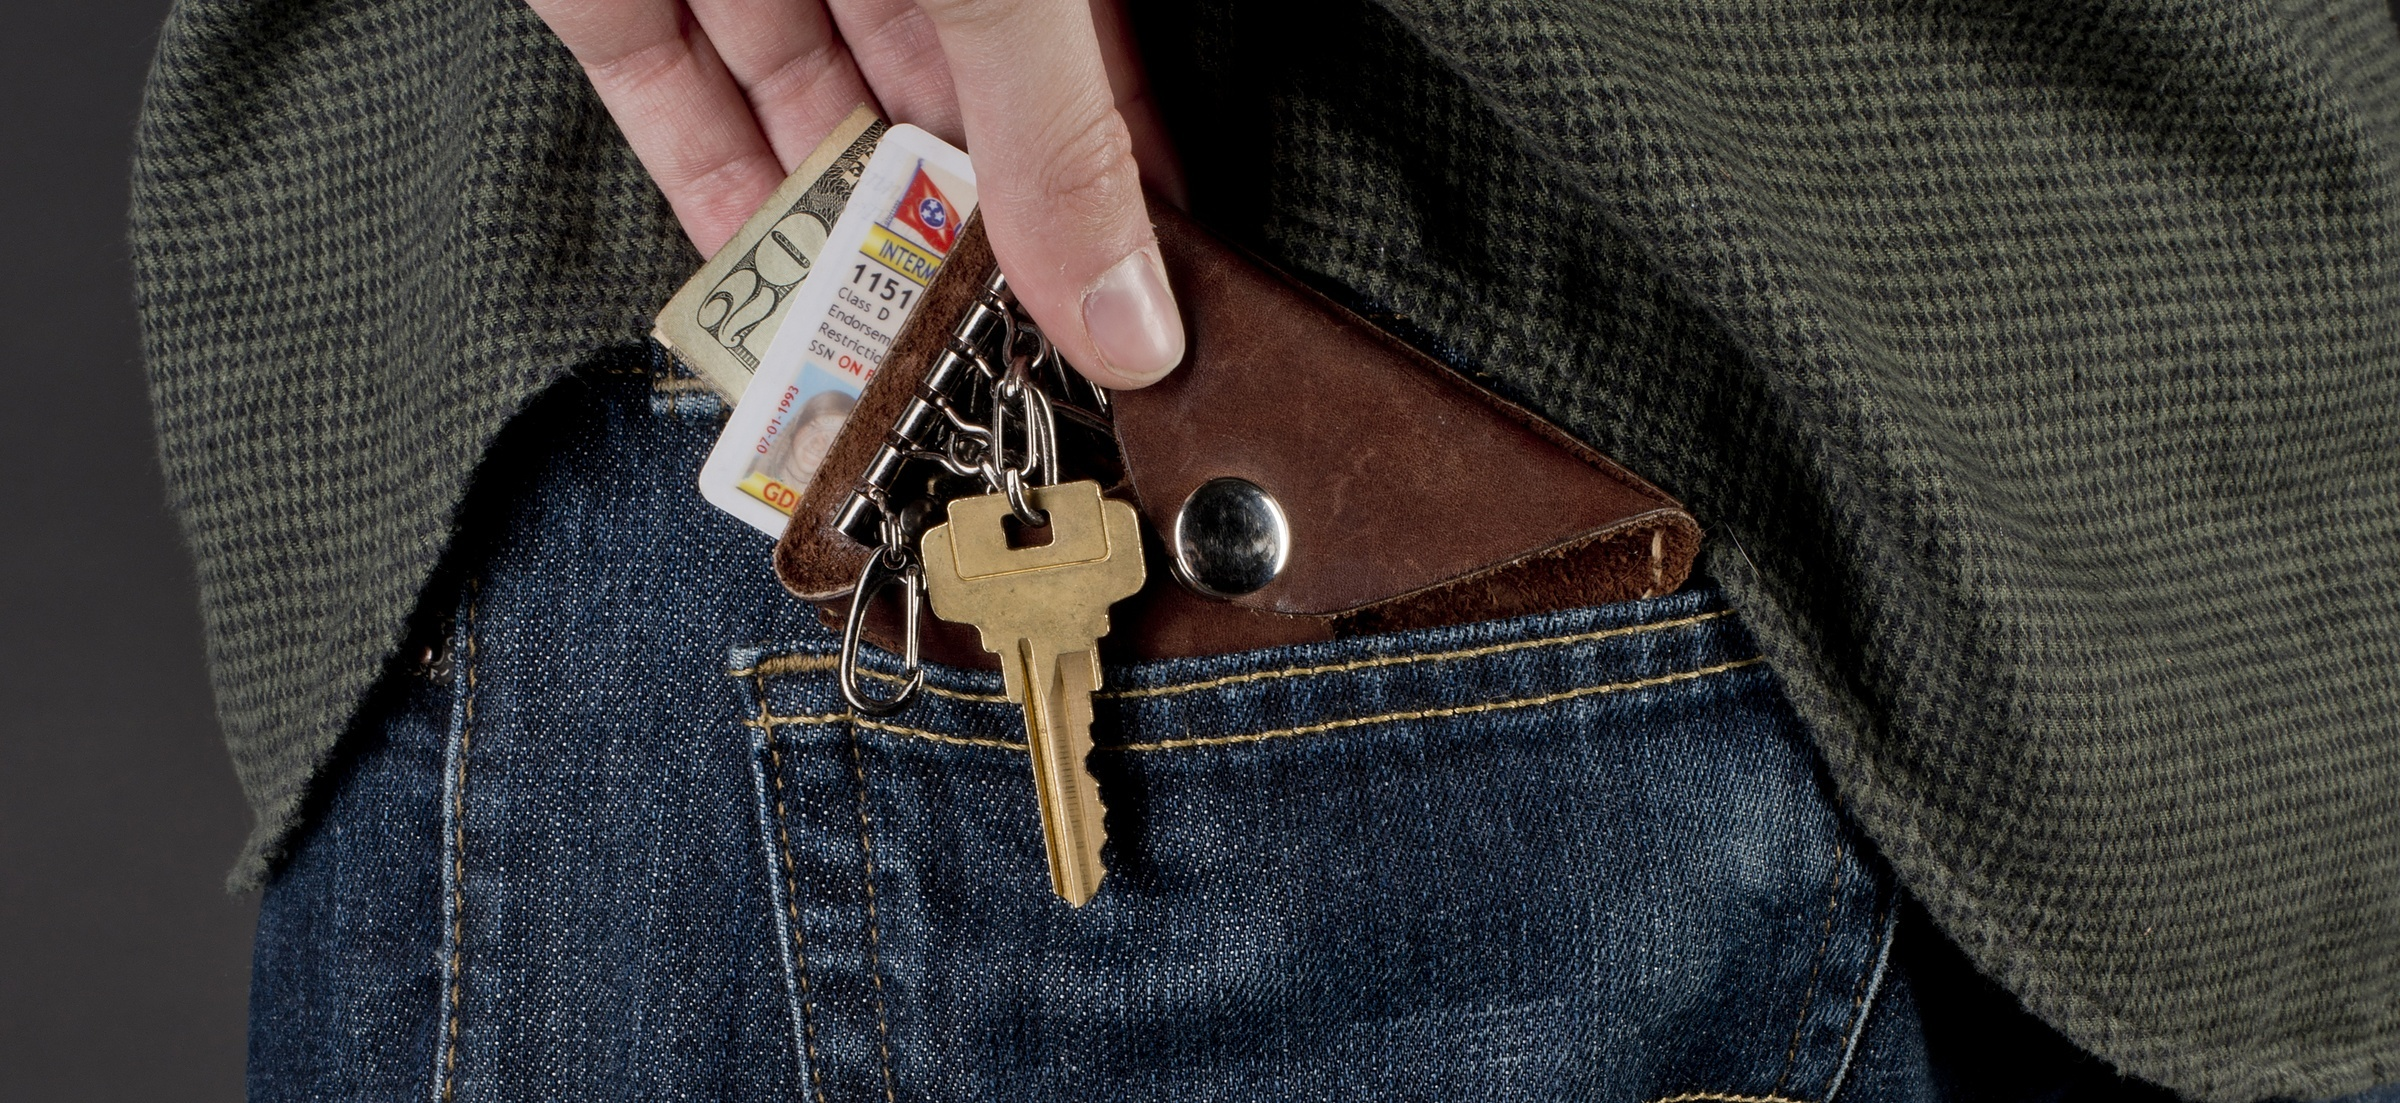 Carry Less Stuff with a Minimalist Leather Wallet and Key Holder